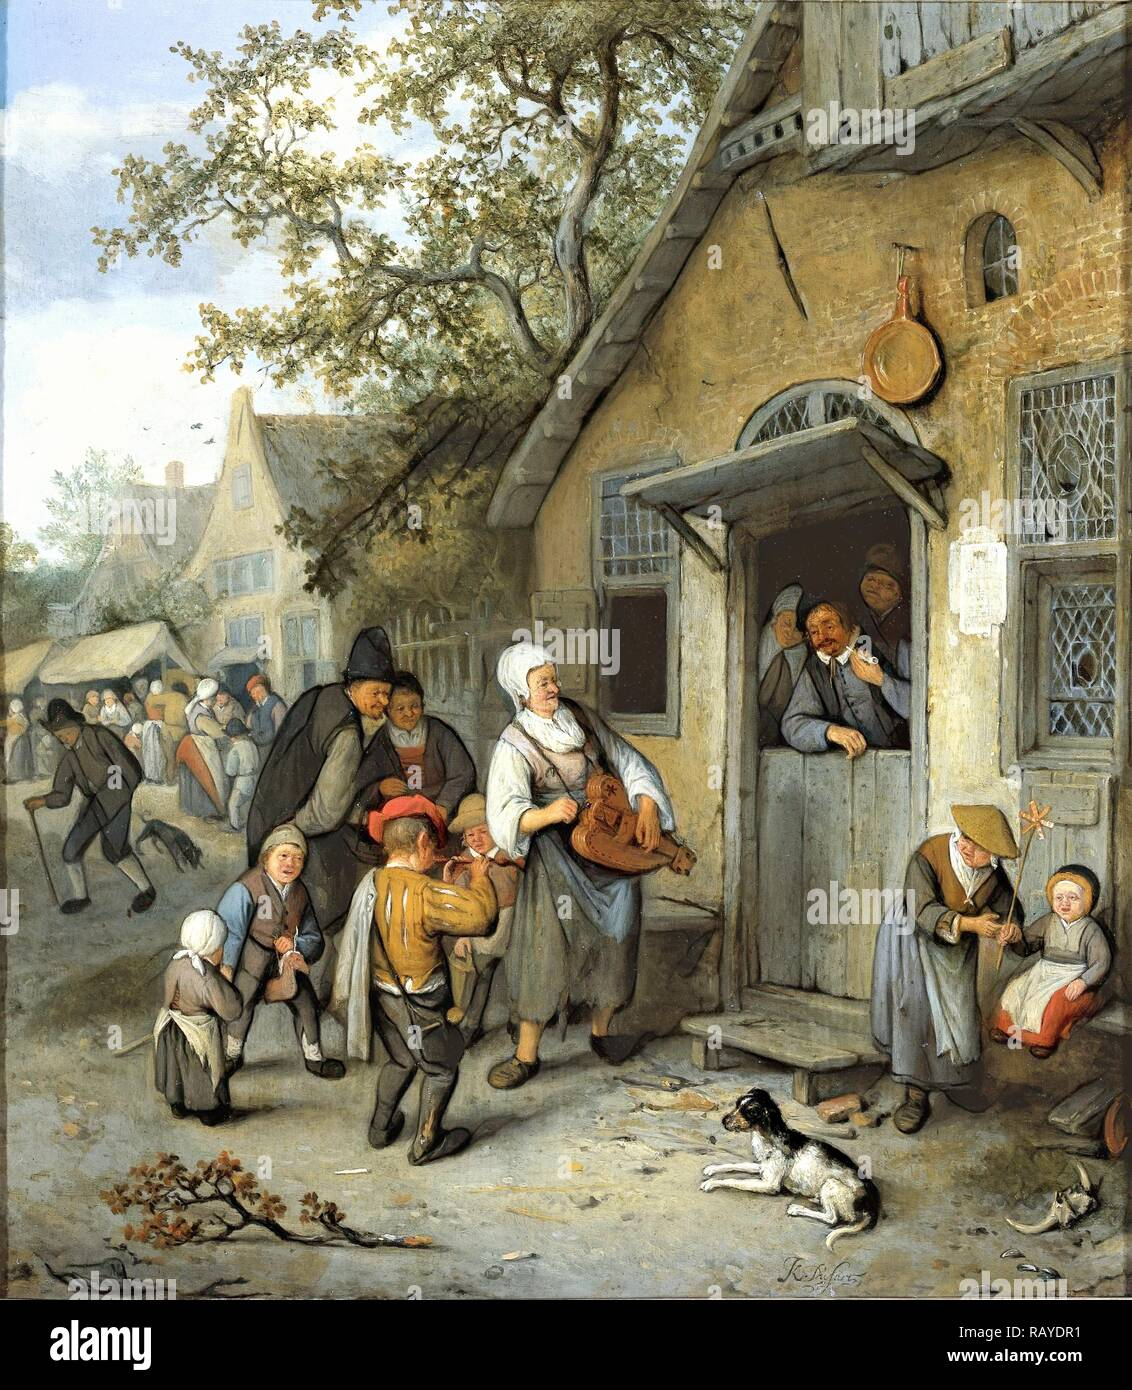 Village Kermesse, Cornelis Dusart, 1680 - 1704. Reimagined by Gibon. Classic art with a modern twist reimagined - Stock Image